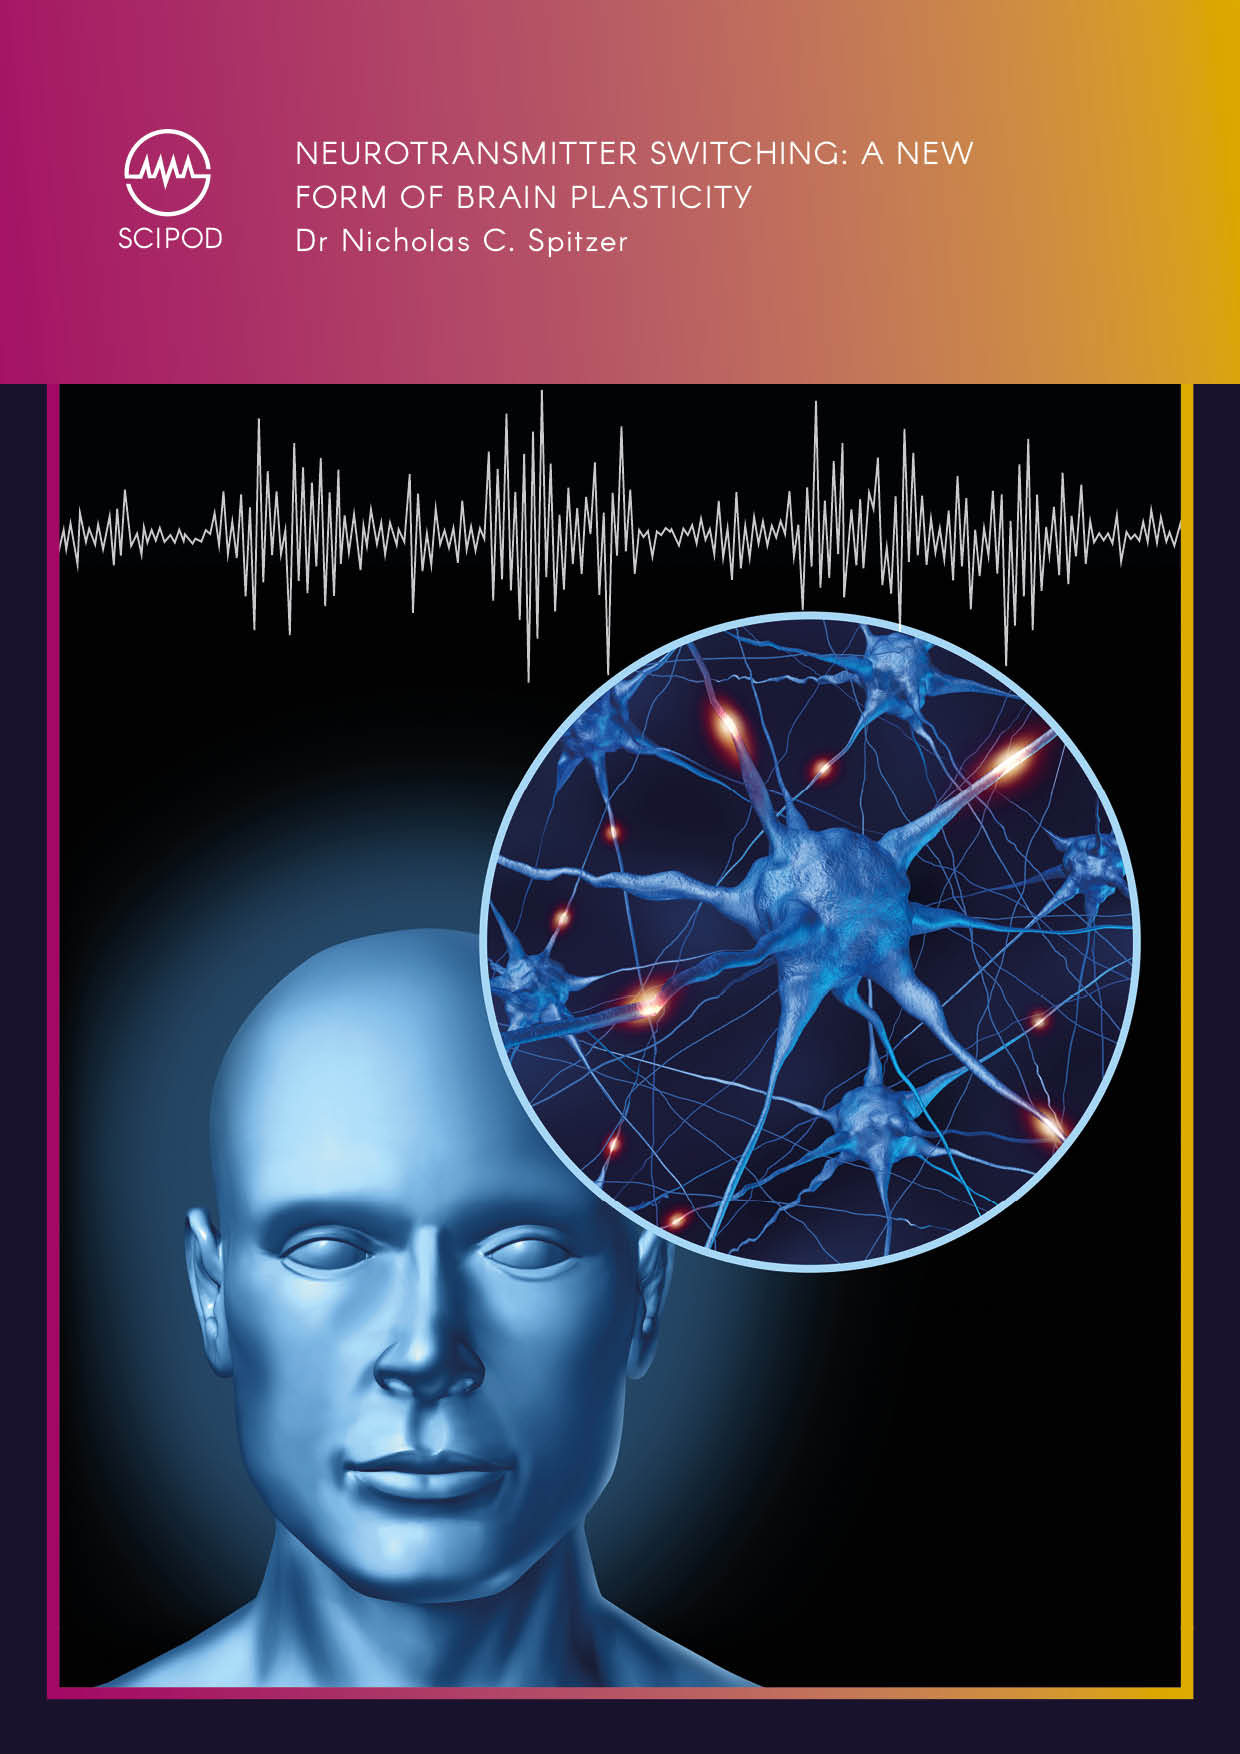 Neurotransmitter Switching A New Form Of Brain Plasticity – Dr Nicholas Spitzer